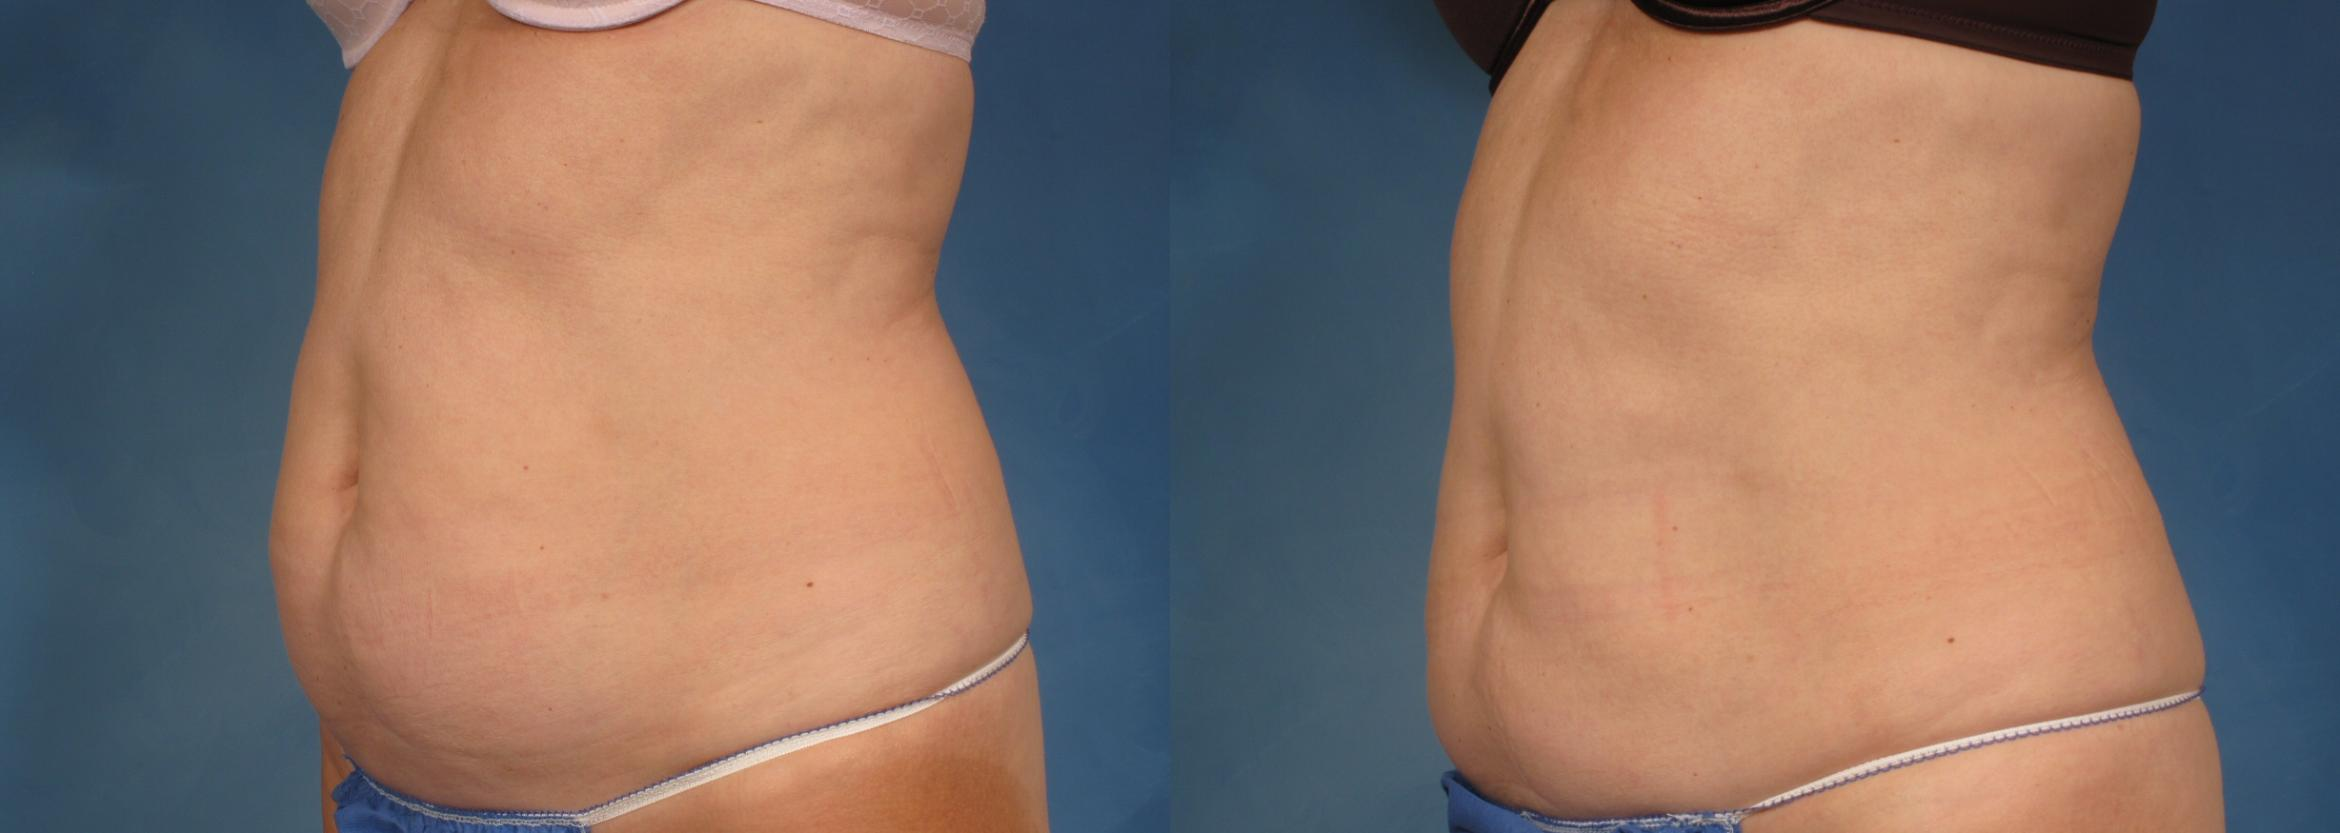 CoolSculpting® Case 195 Before & After View #2 | Naples, FL | Kent V. Hasen, M.D.